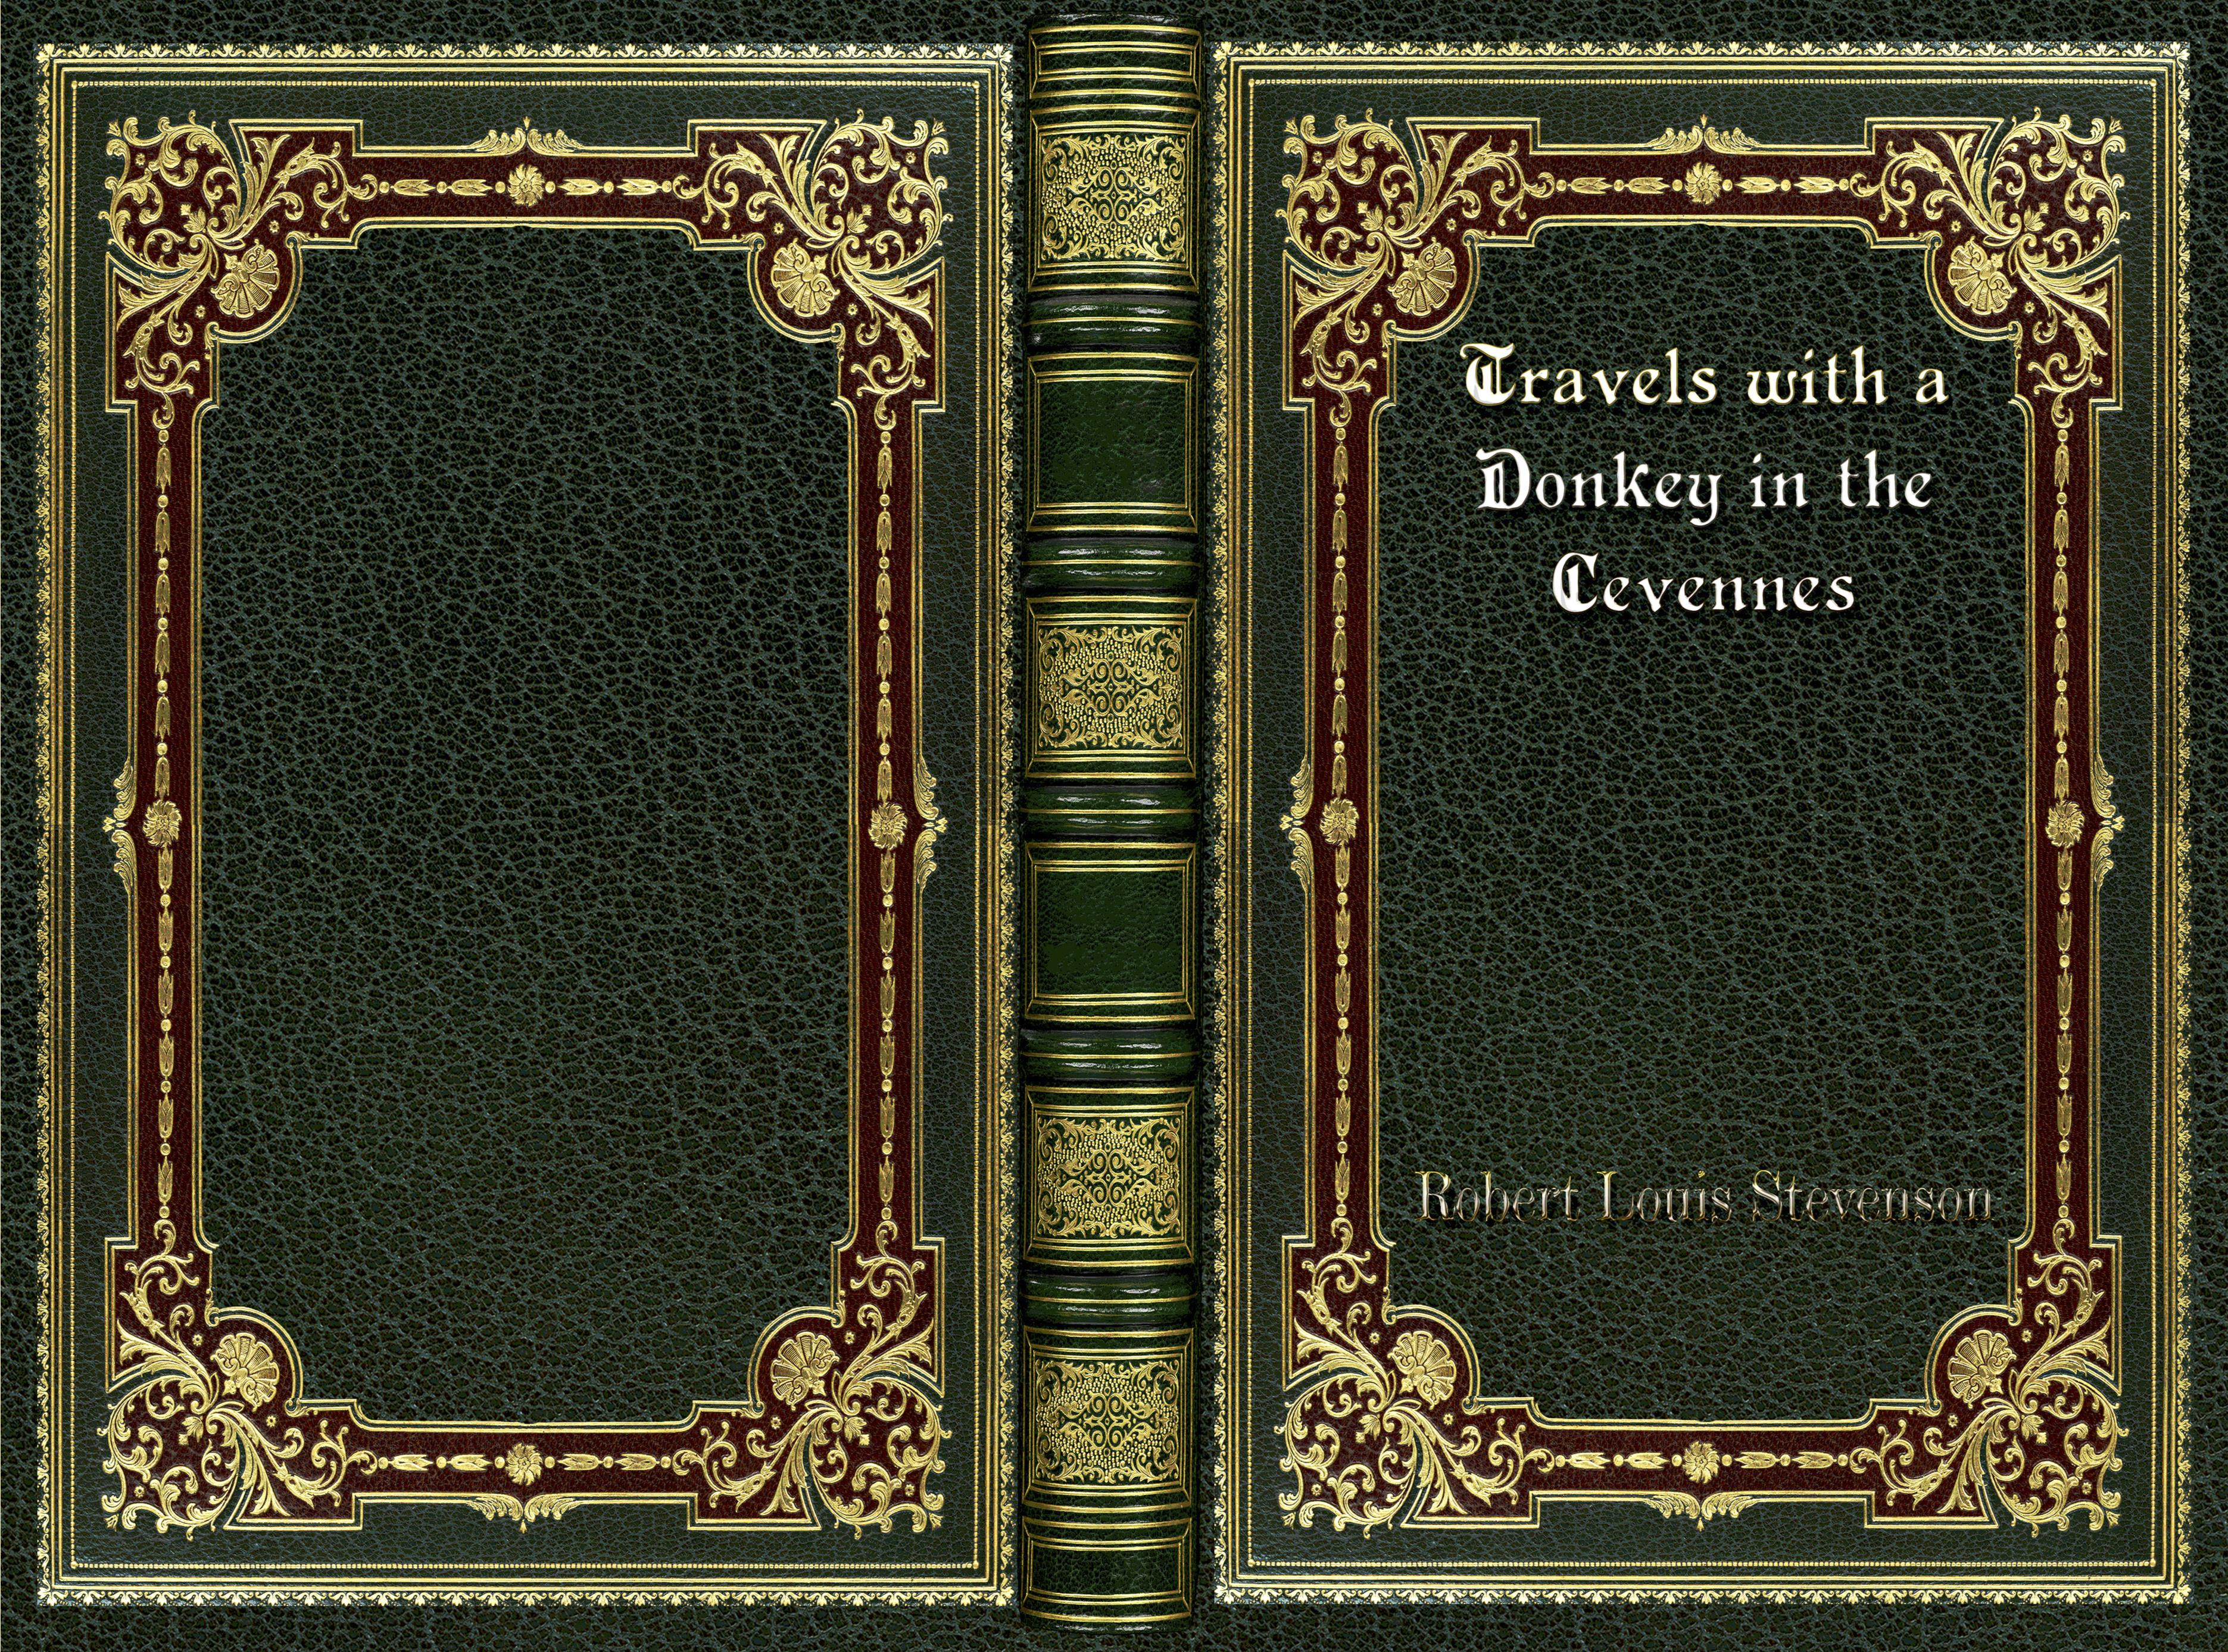 Travels with a Donkey in the Cevennes cover image